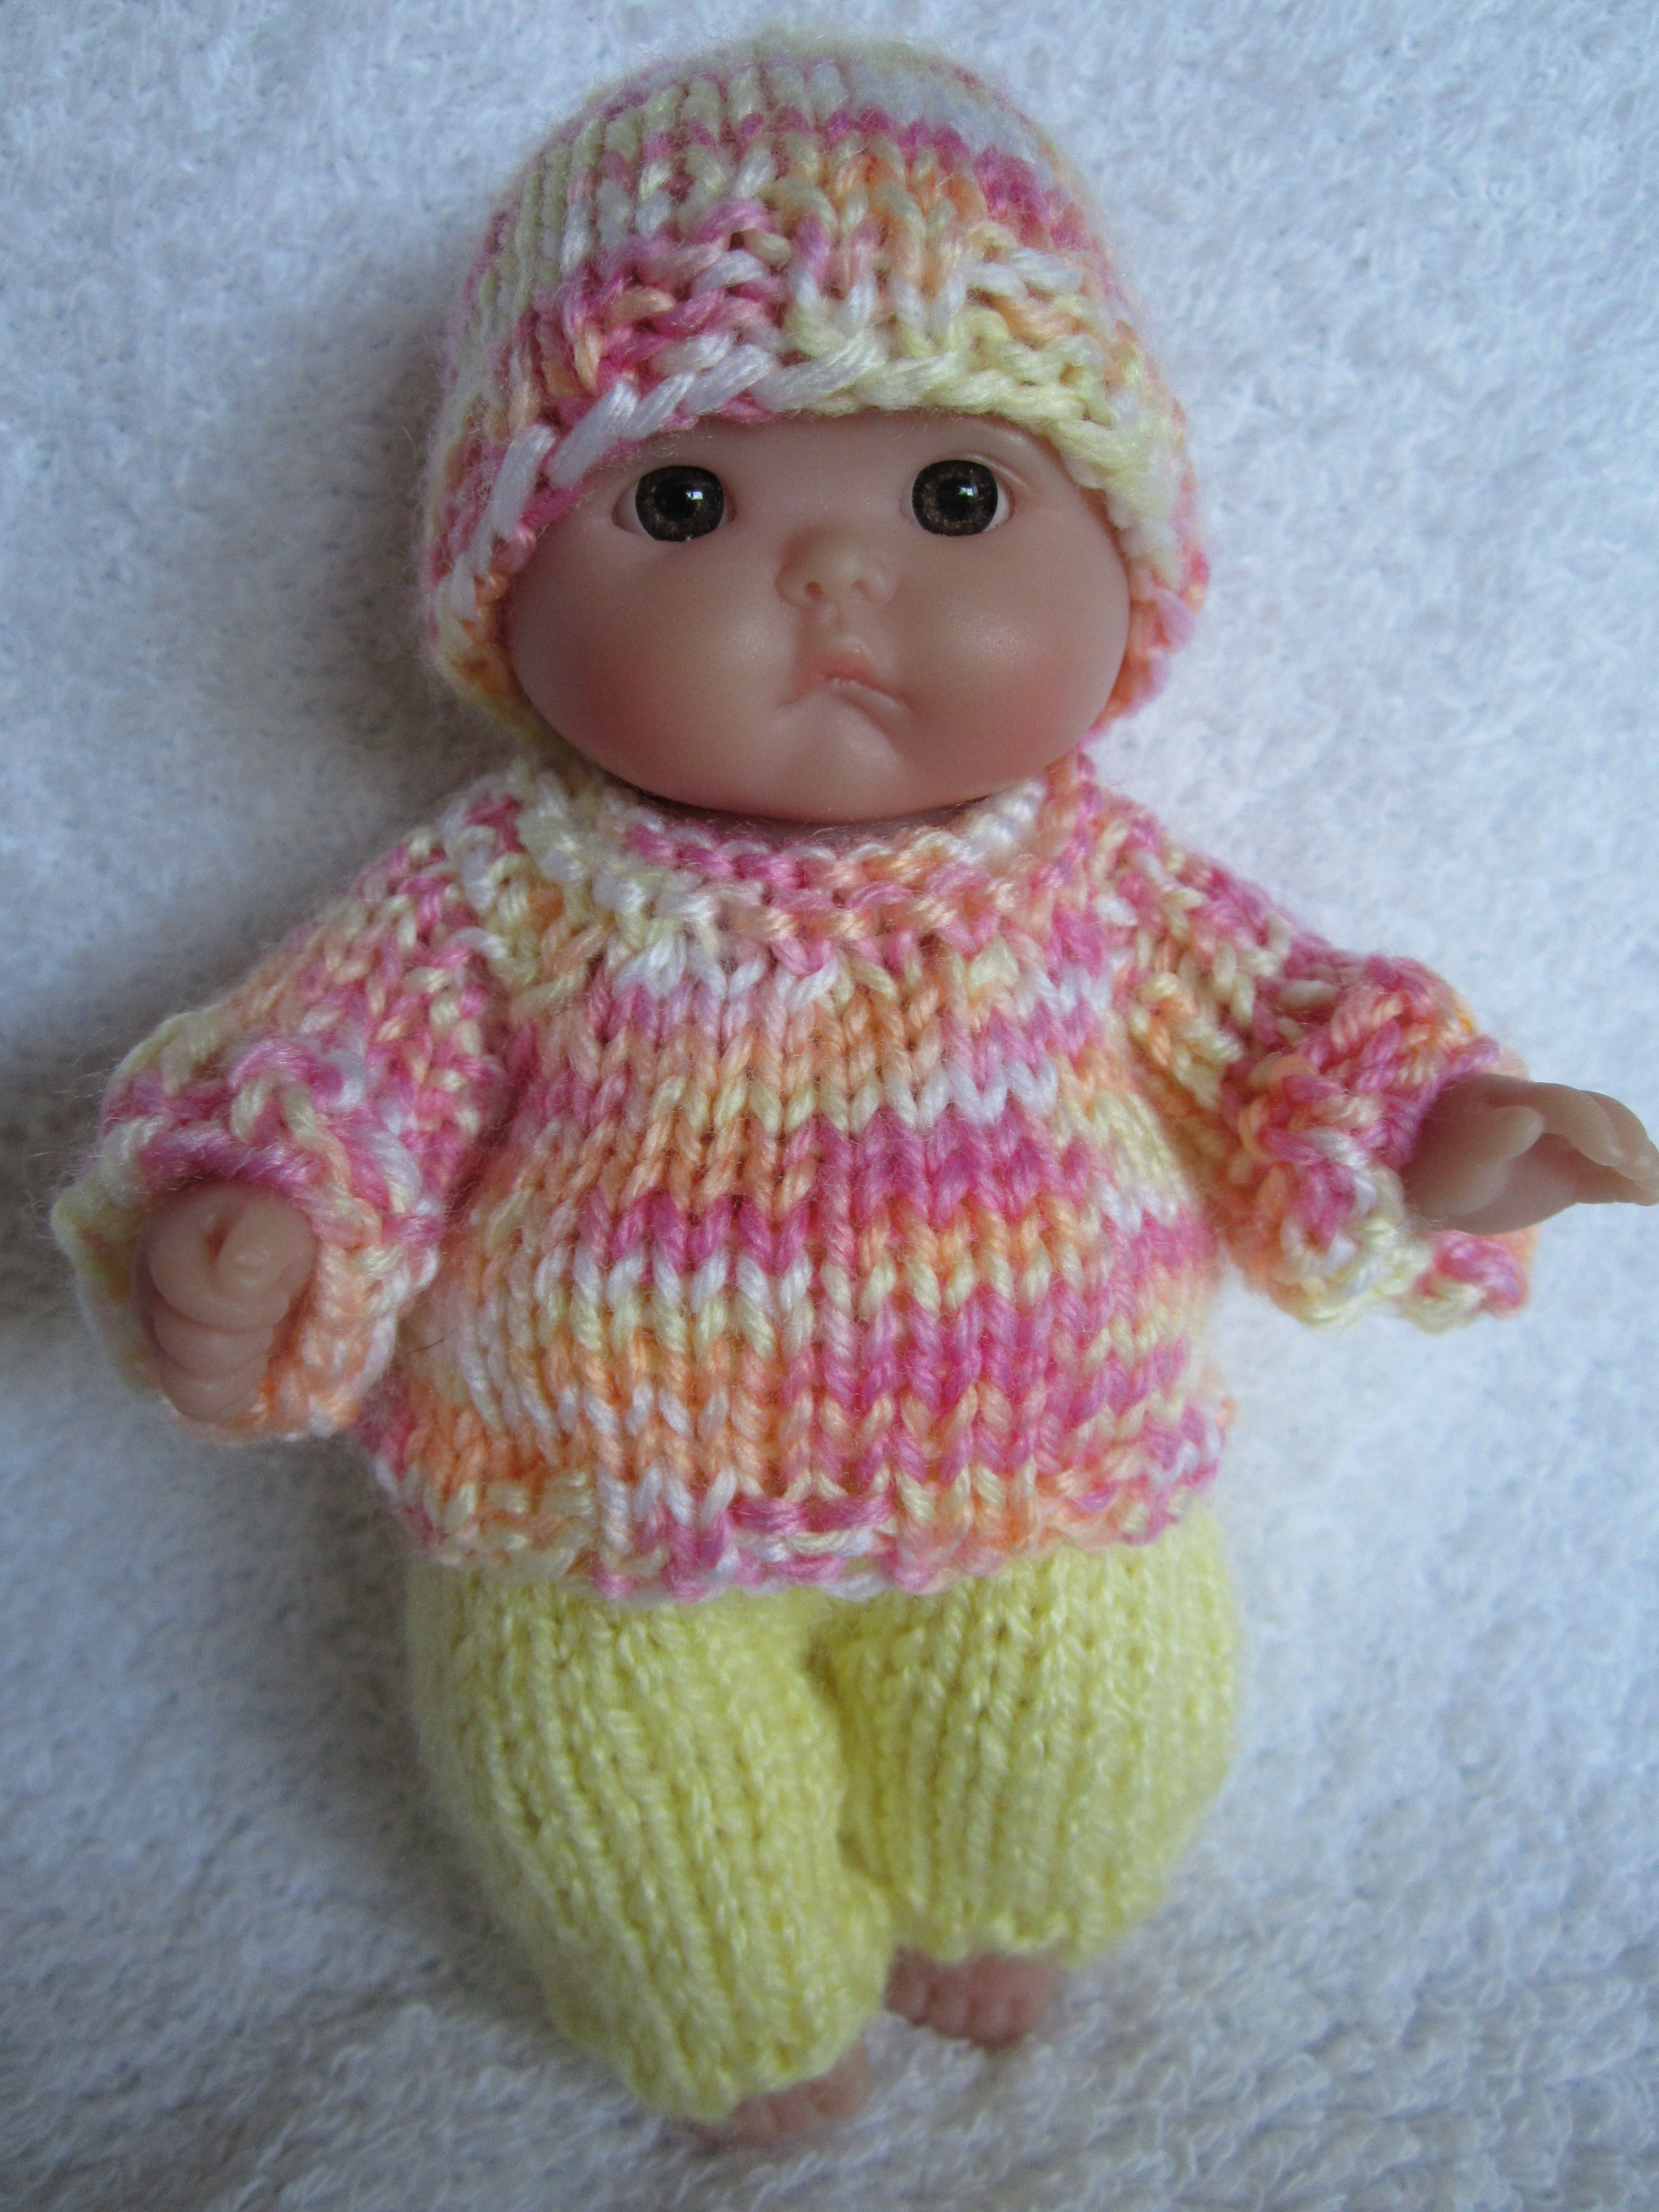 My Etsy shop, for sale here https://www.etsy.com/listing/168701211/set-for-5-inch-itty-bitty-berenguer-baby?ref=shop_home_active